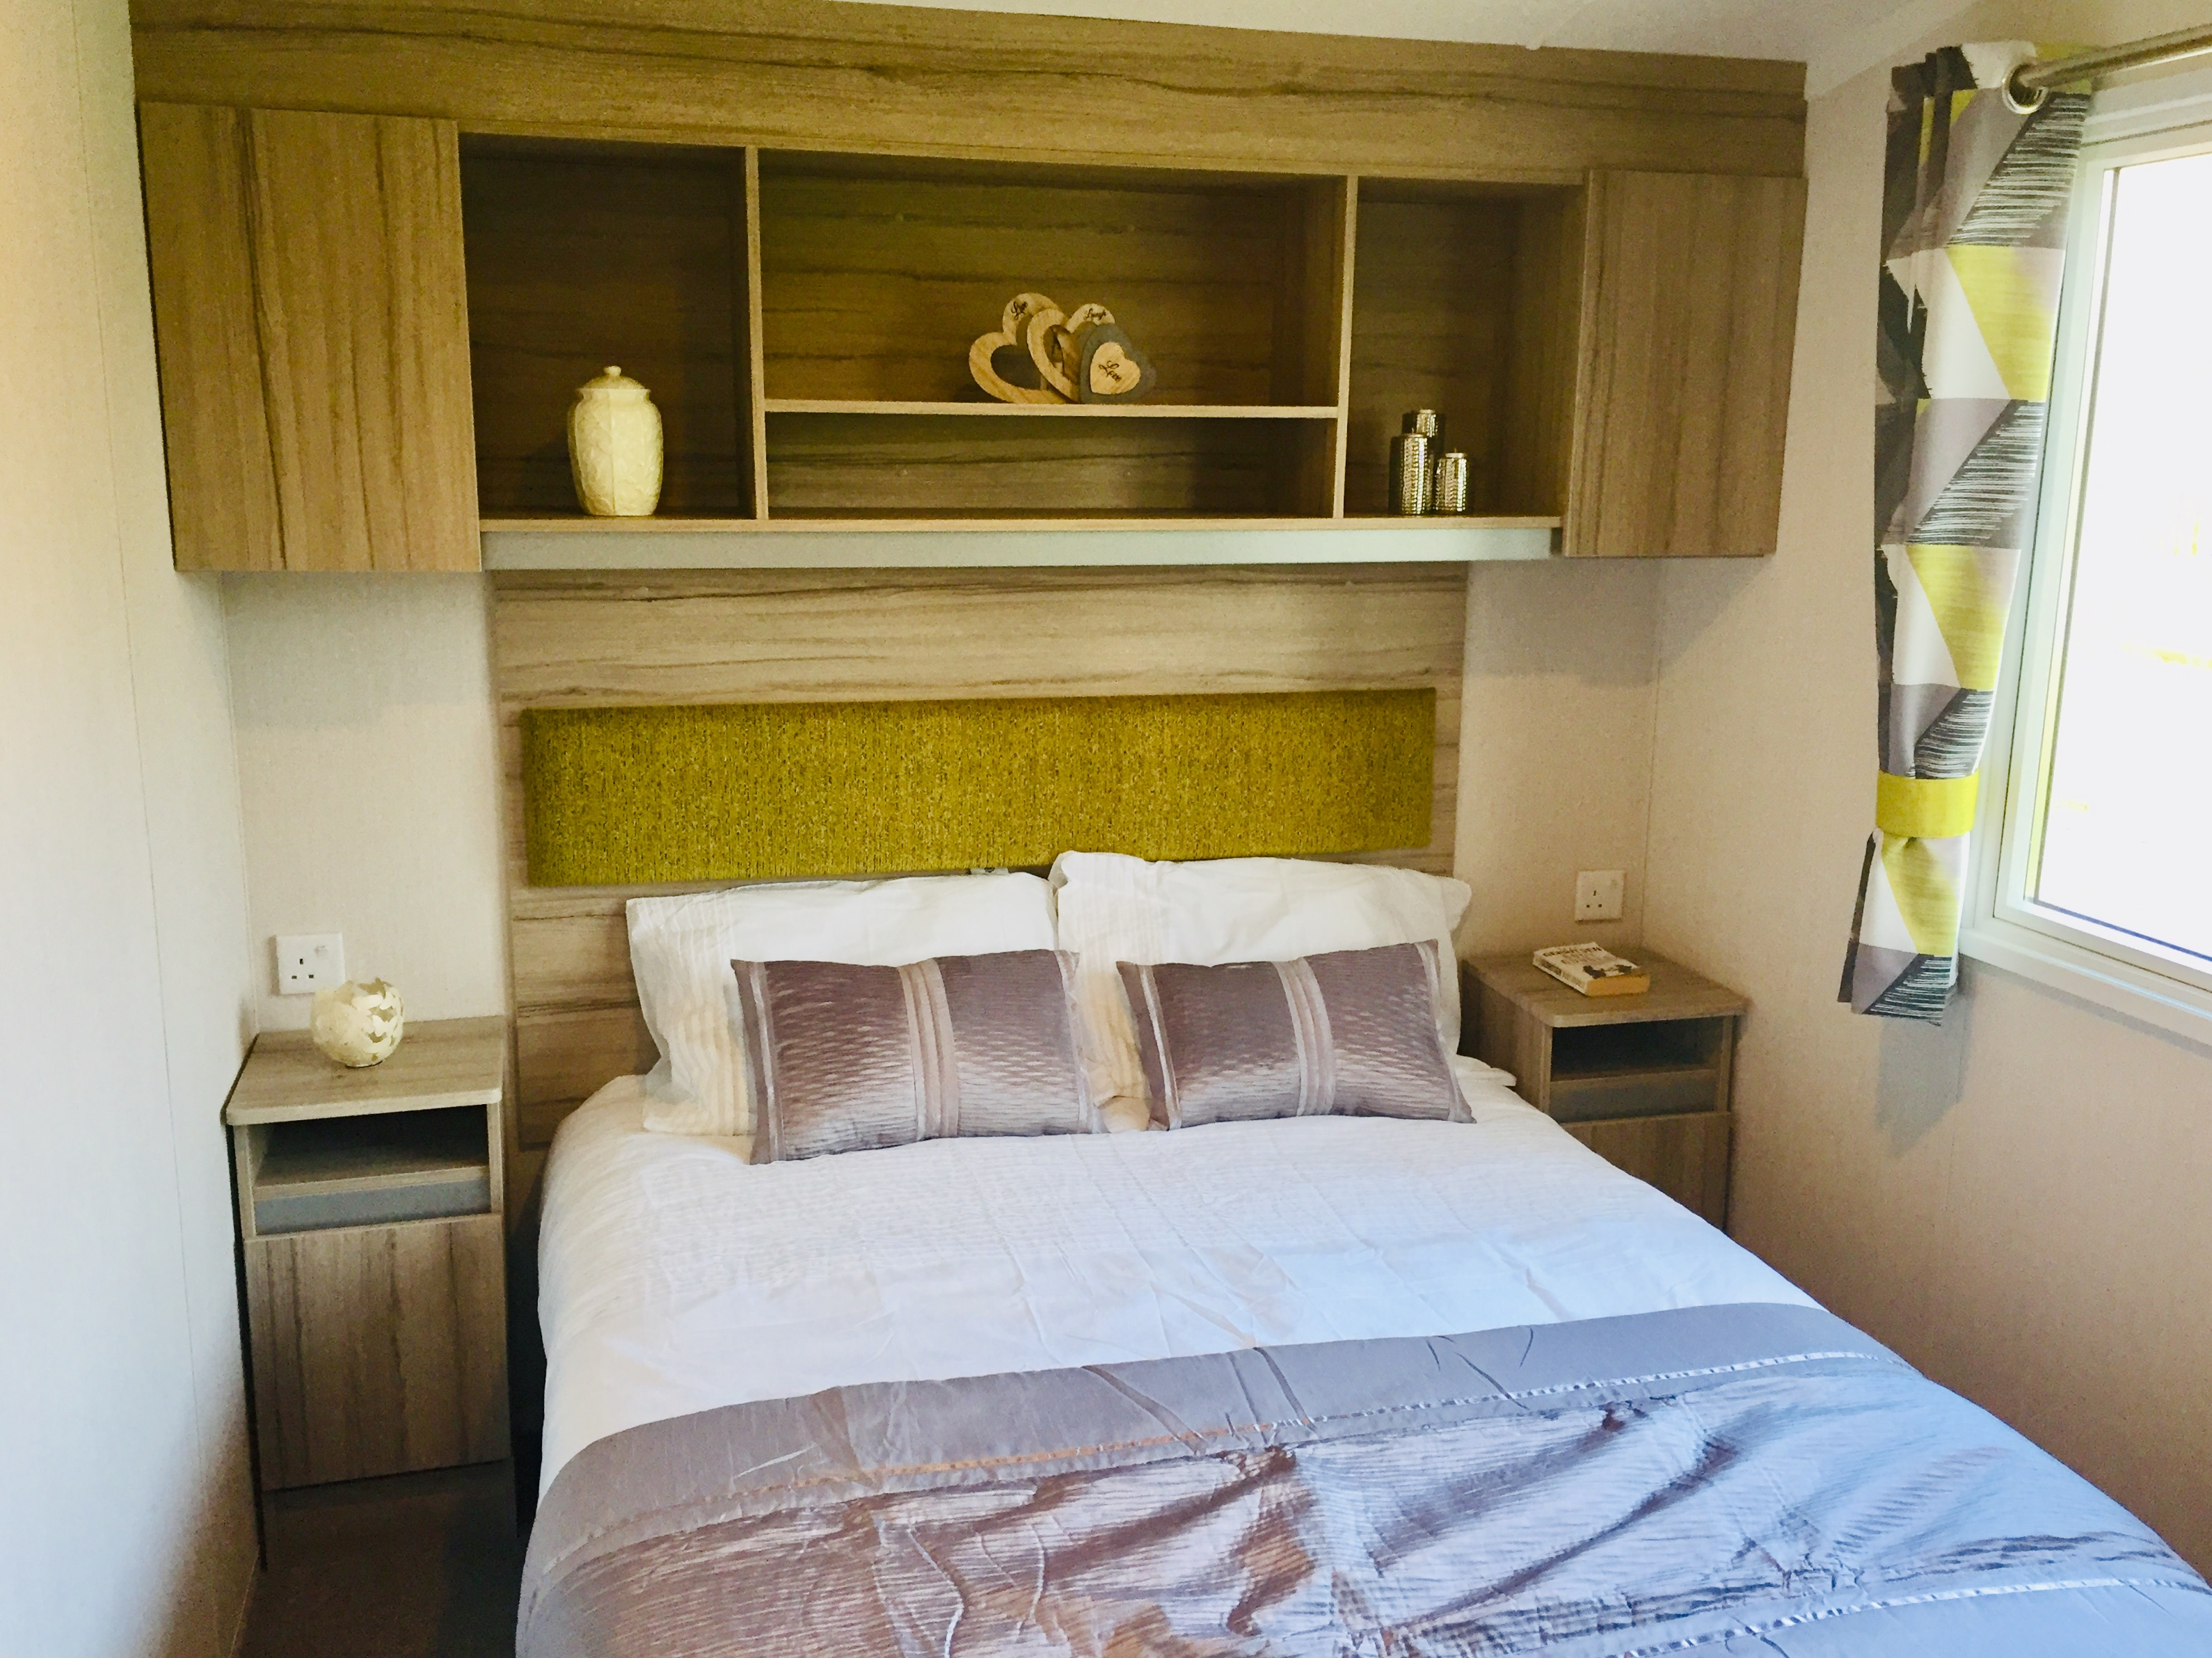 The new Swift Ardennes is ready to view at Smytham Holiday Park, North Devon.